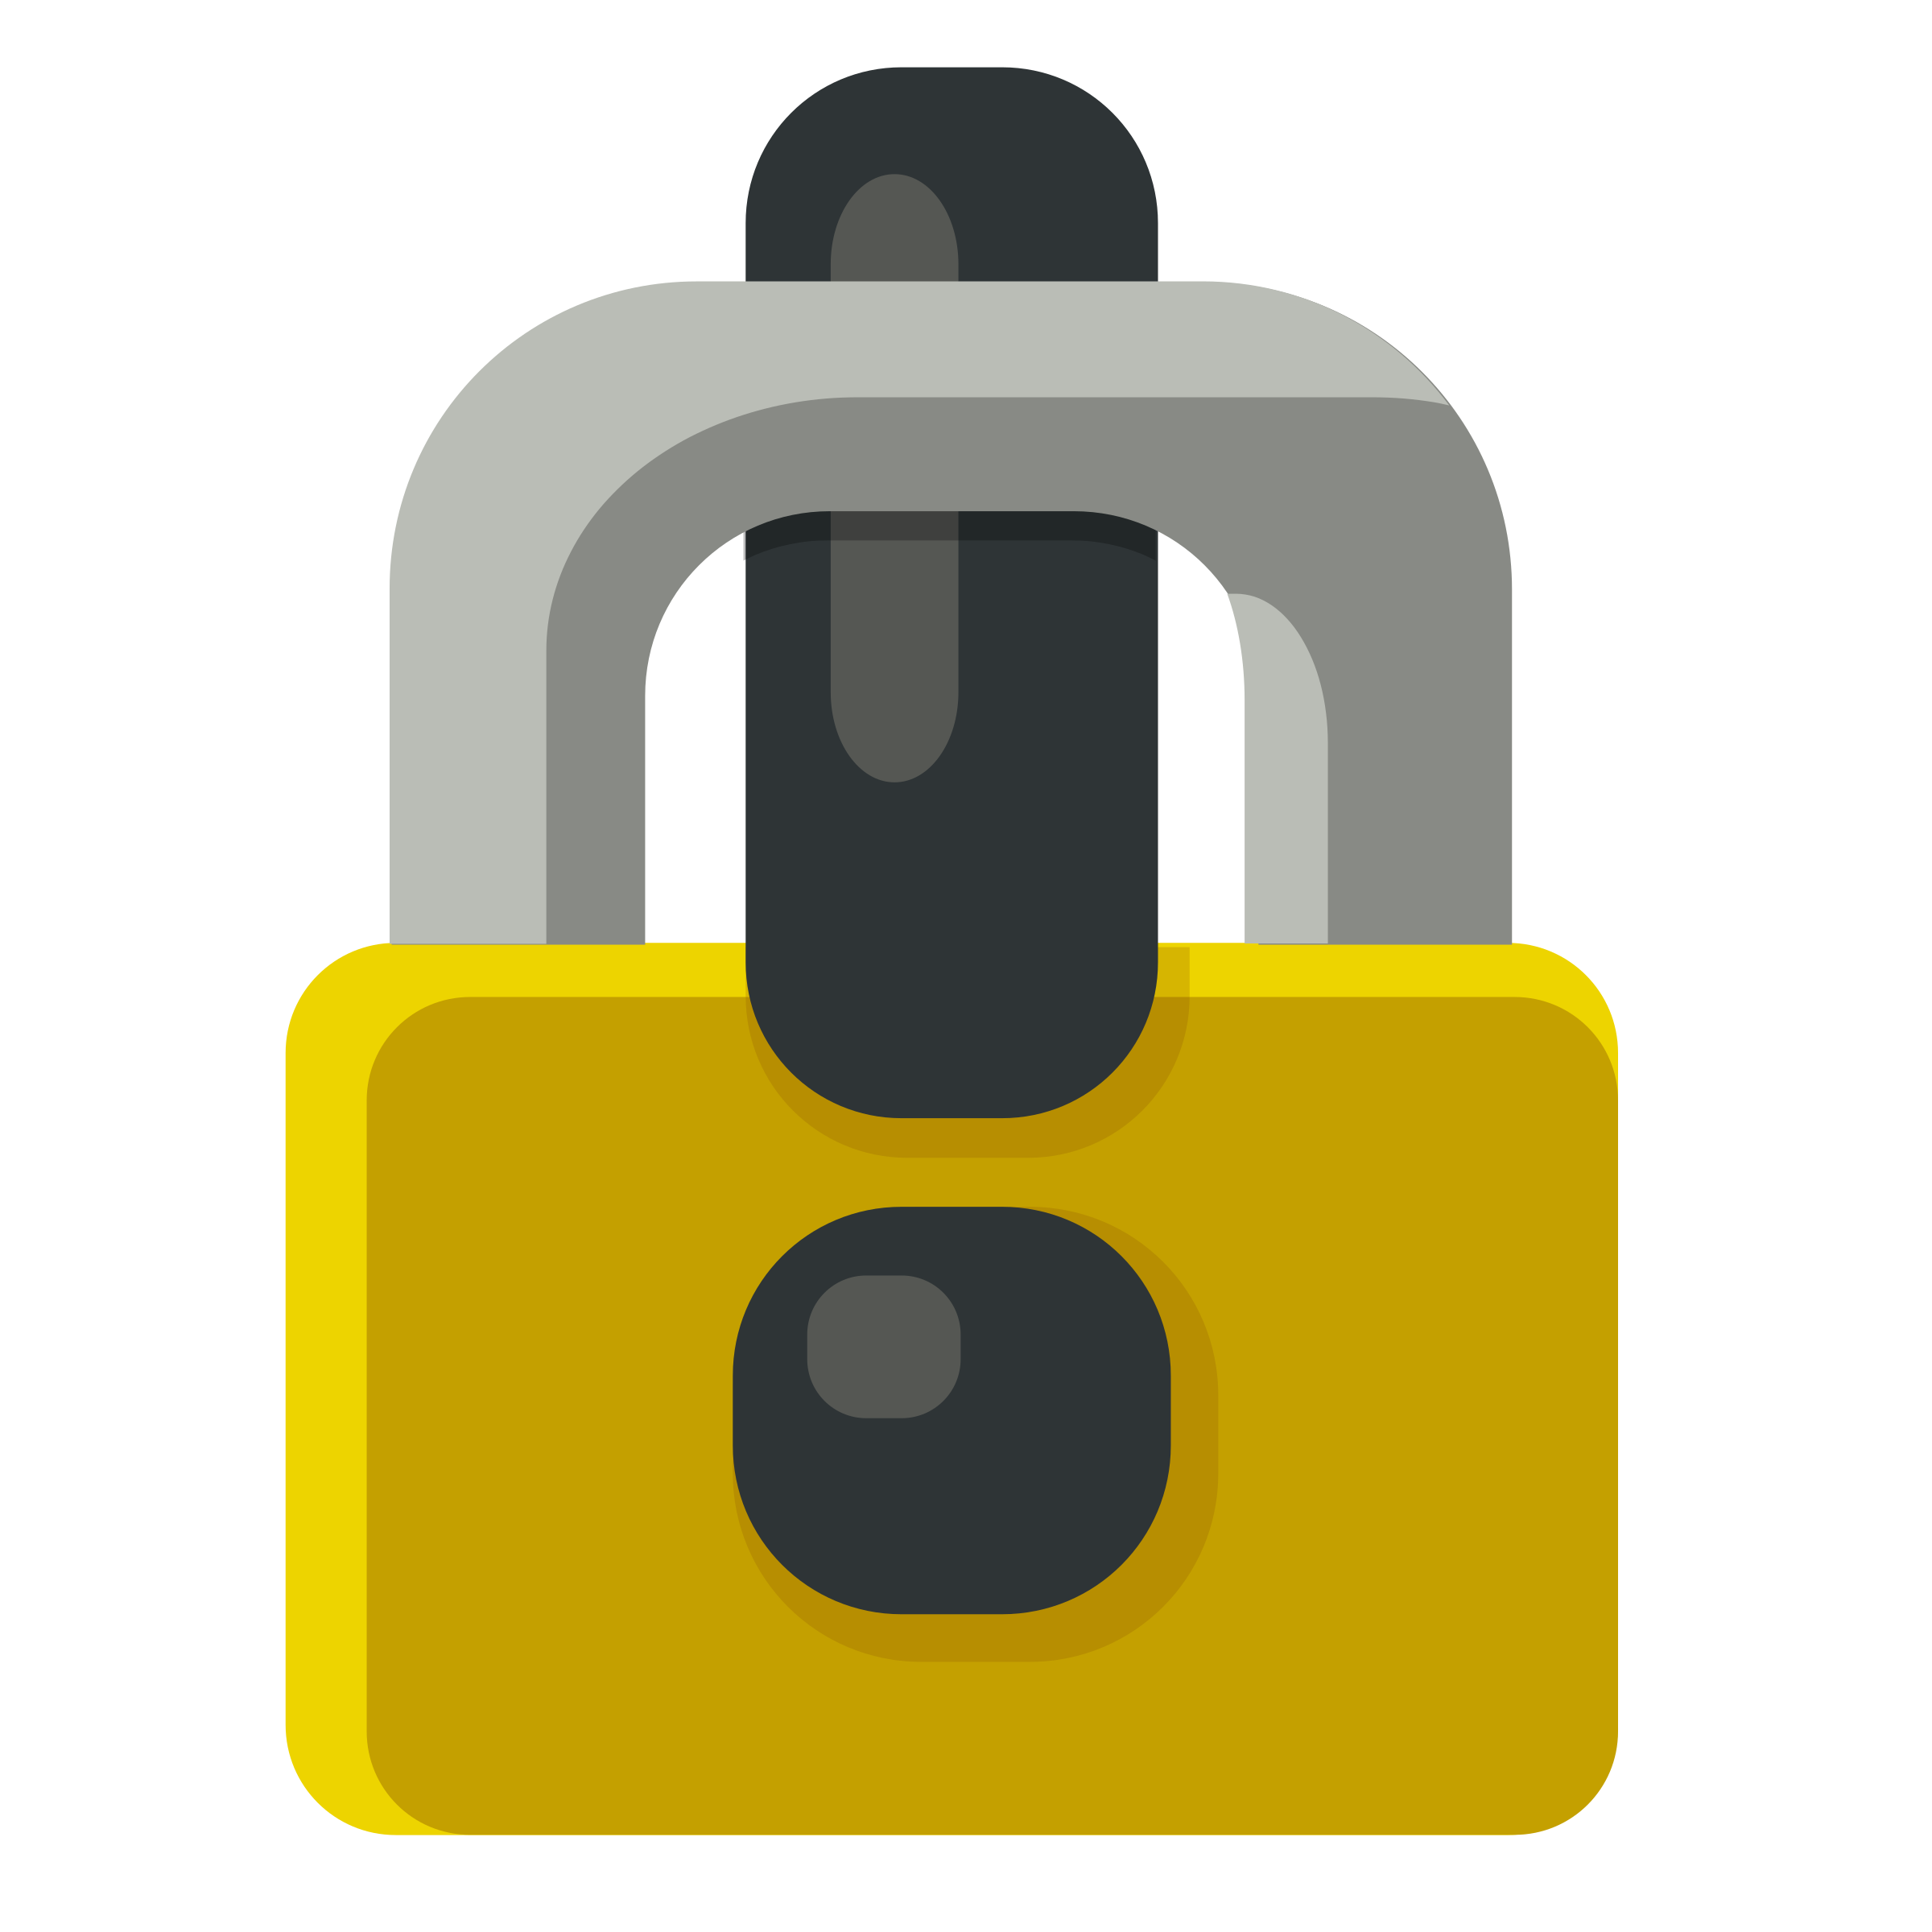 Locked book clipart image royalty free library Locked Exclamation Mark - Padlock Icons PNG - Free PNG and Icons ... image royalty free library